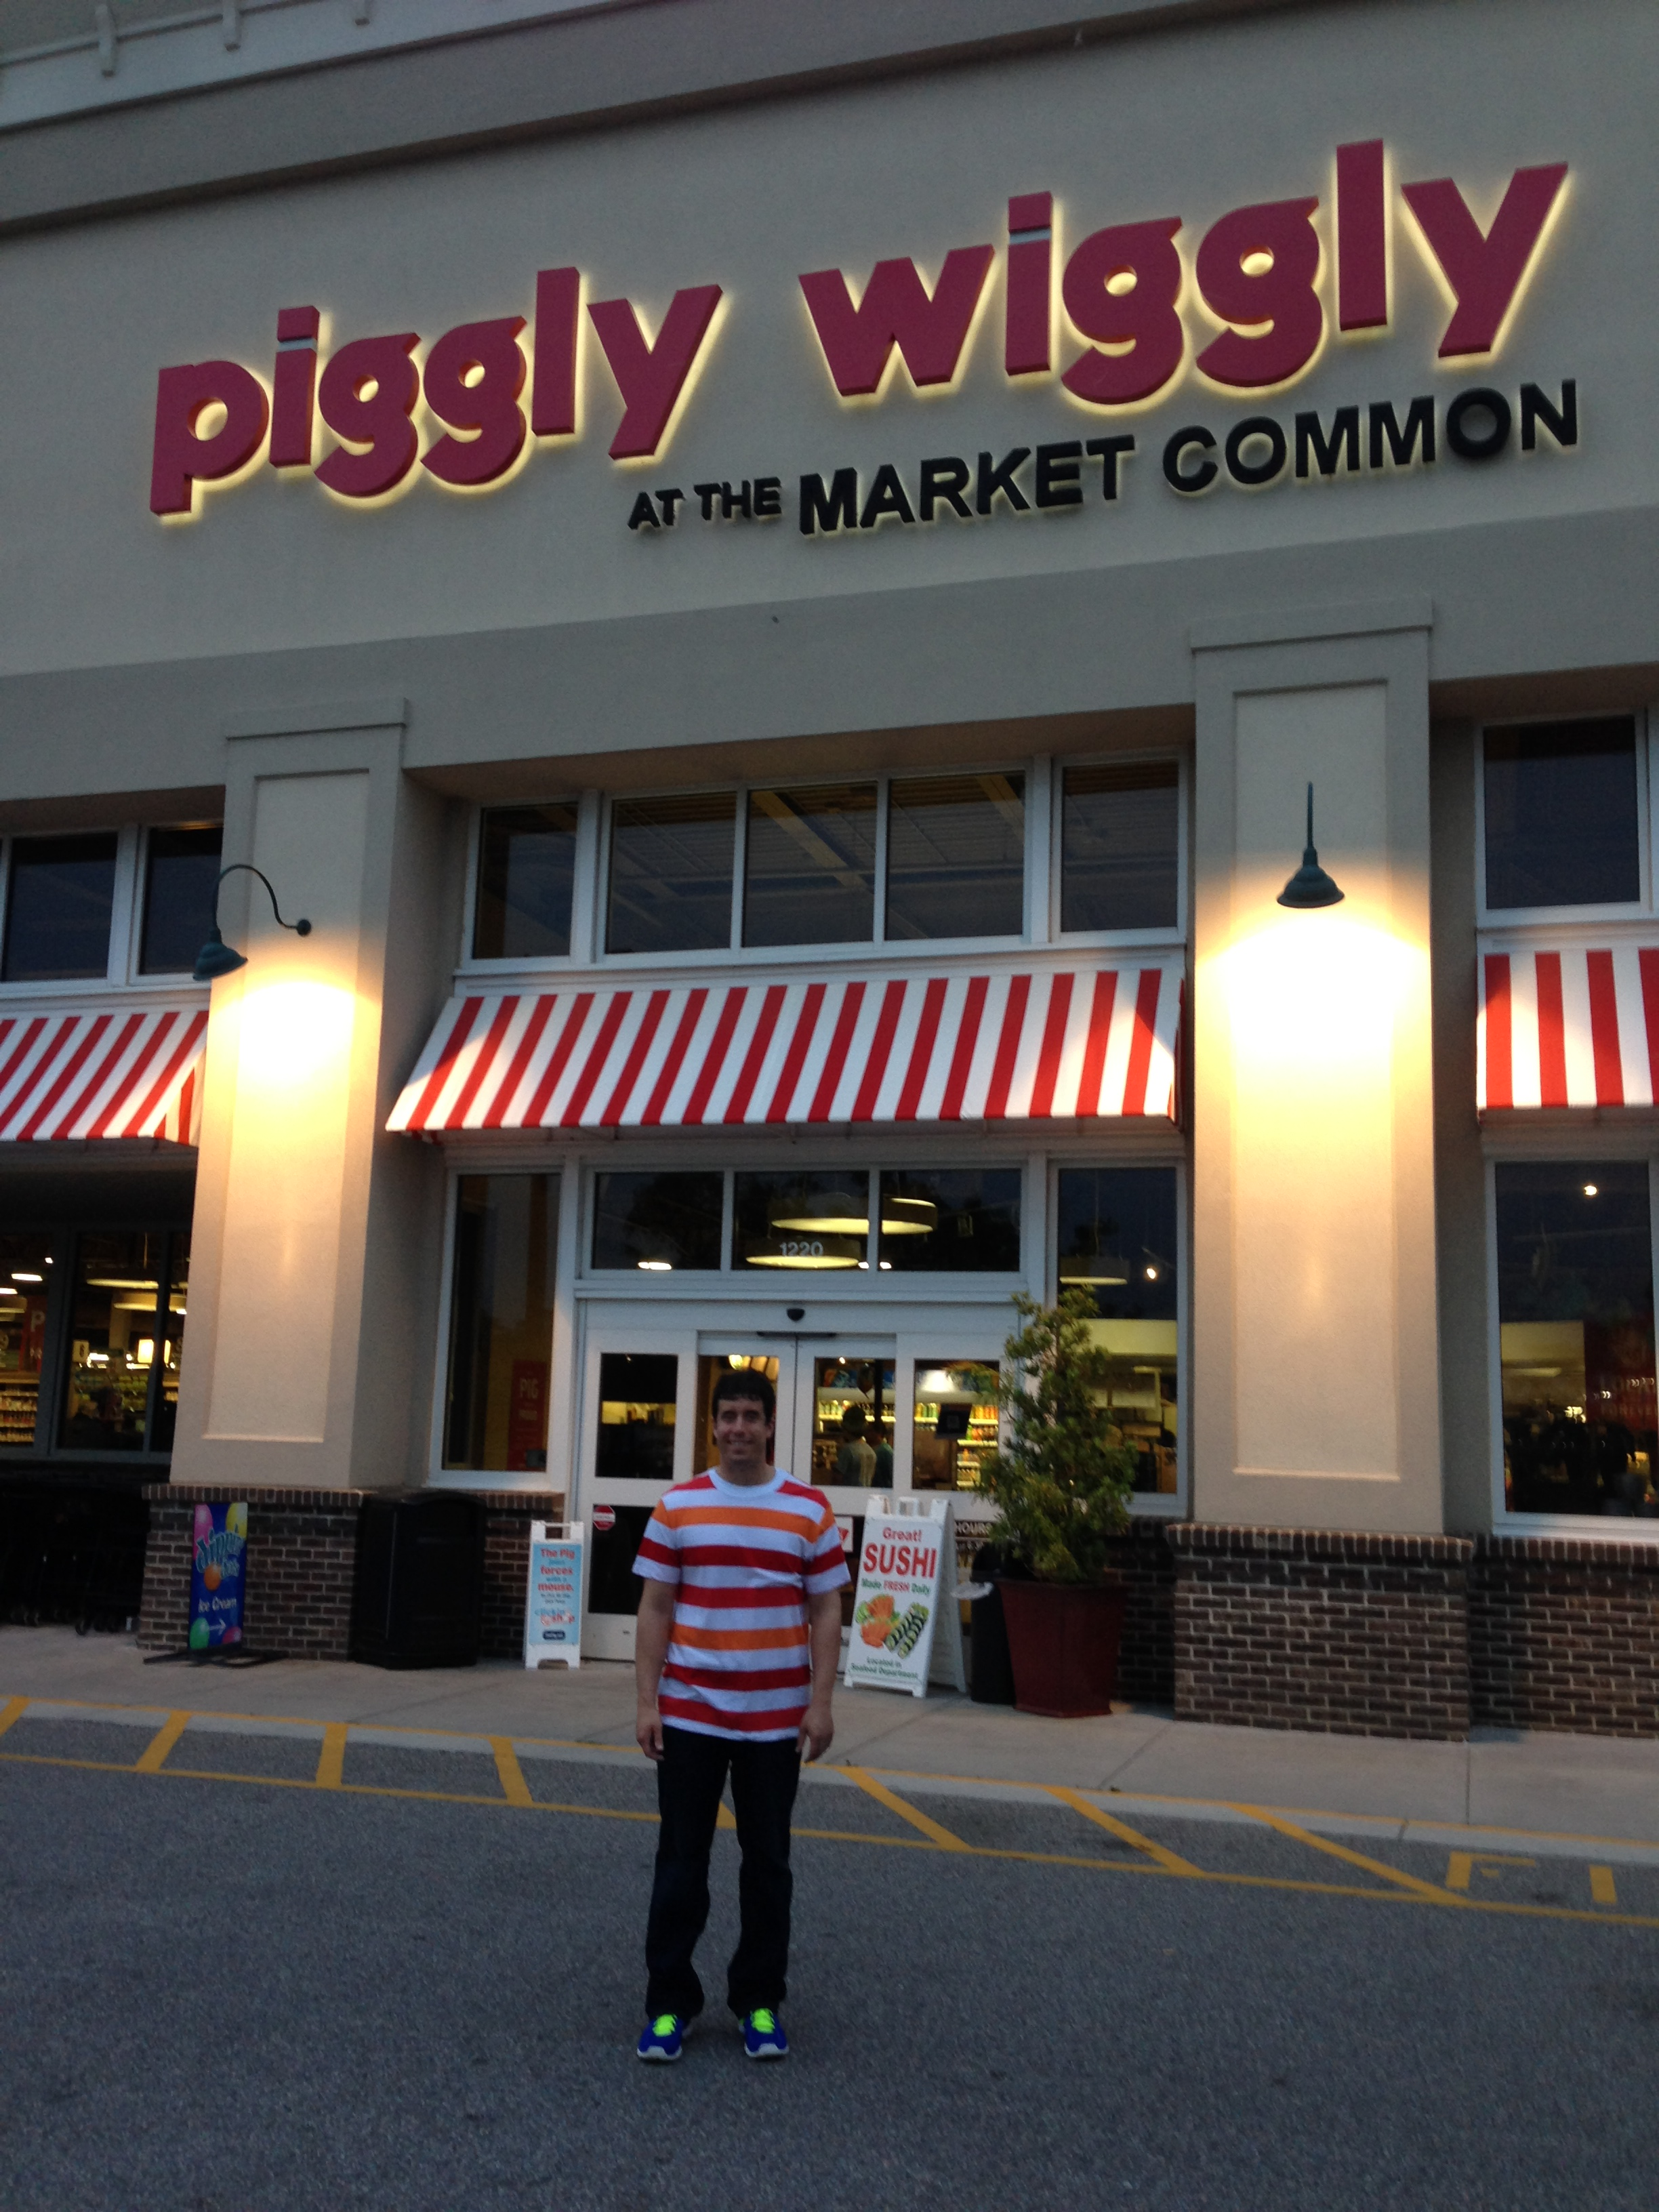 A prominent grocery store chain in the south is Piggly Wiggly. They have a really cool store in Market Common.